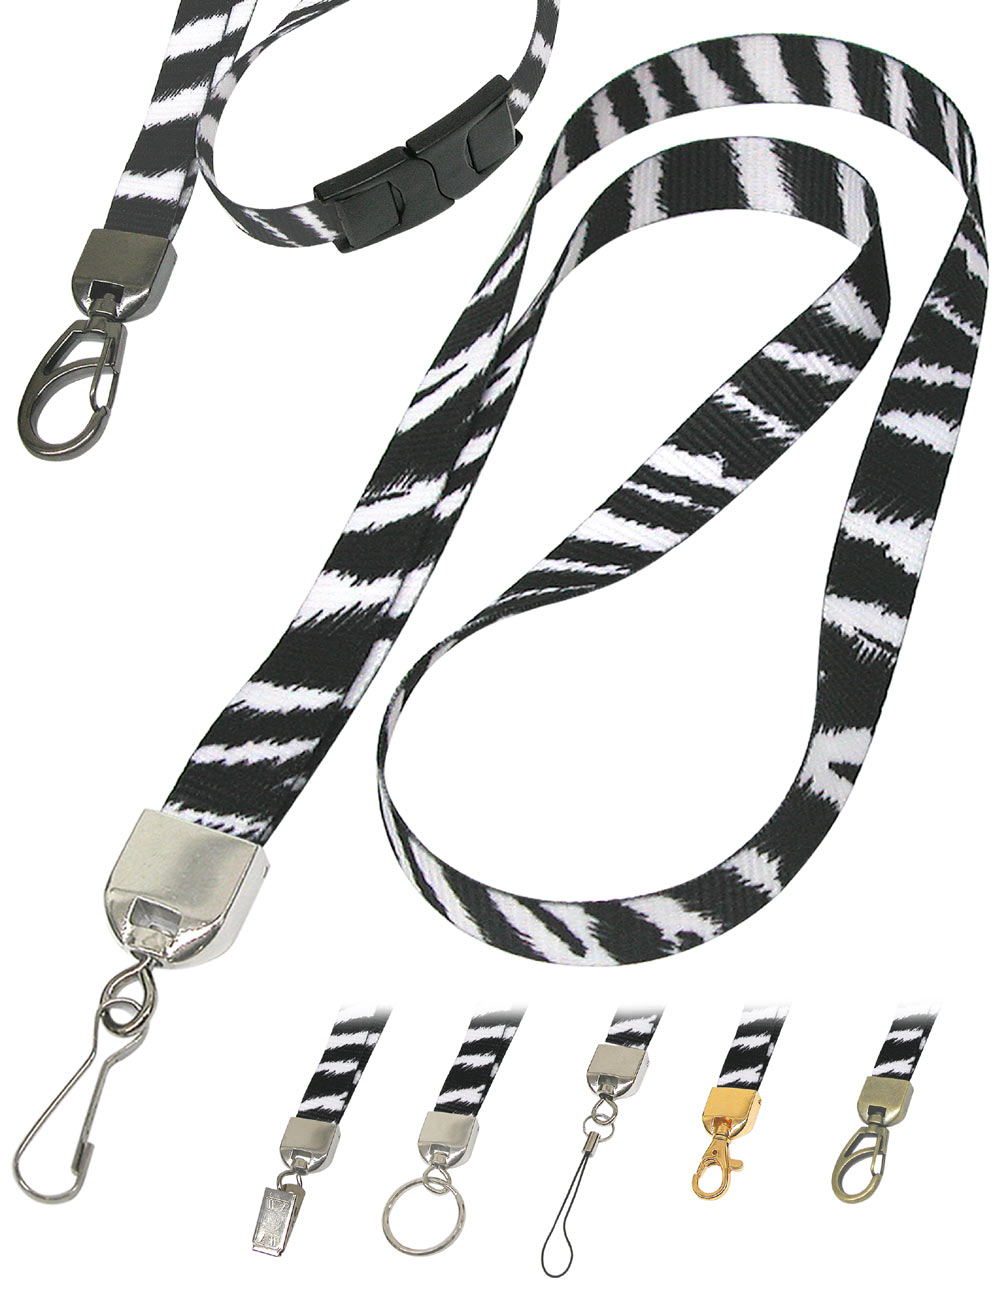 Zebra Lanyards: Cool Zebra Print Lanyards, Zebra Stripes or Zebra Pattern Printed Lanyards.